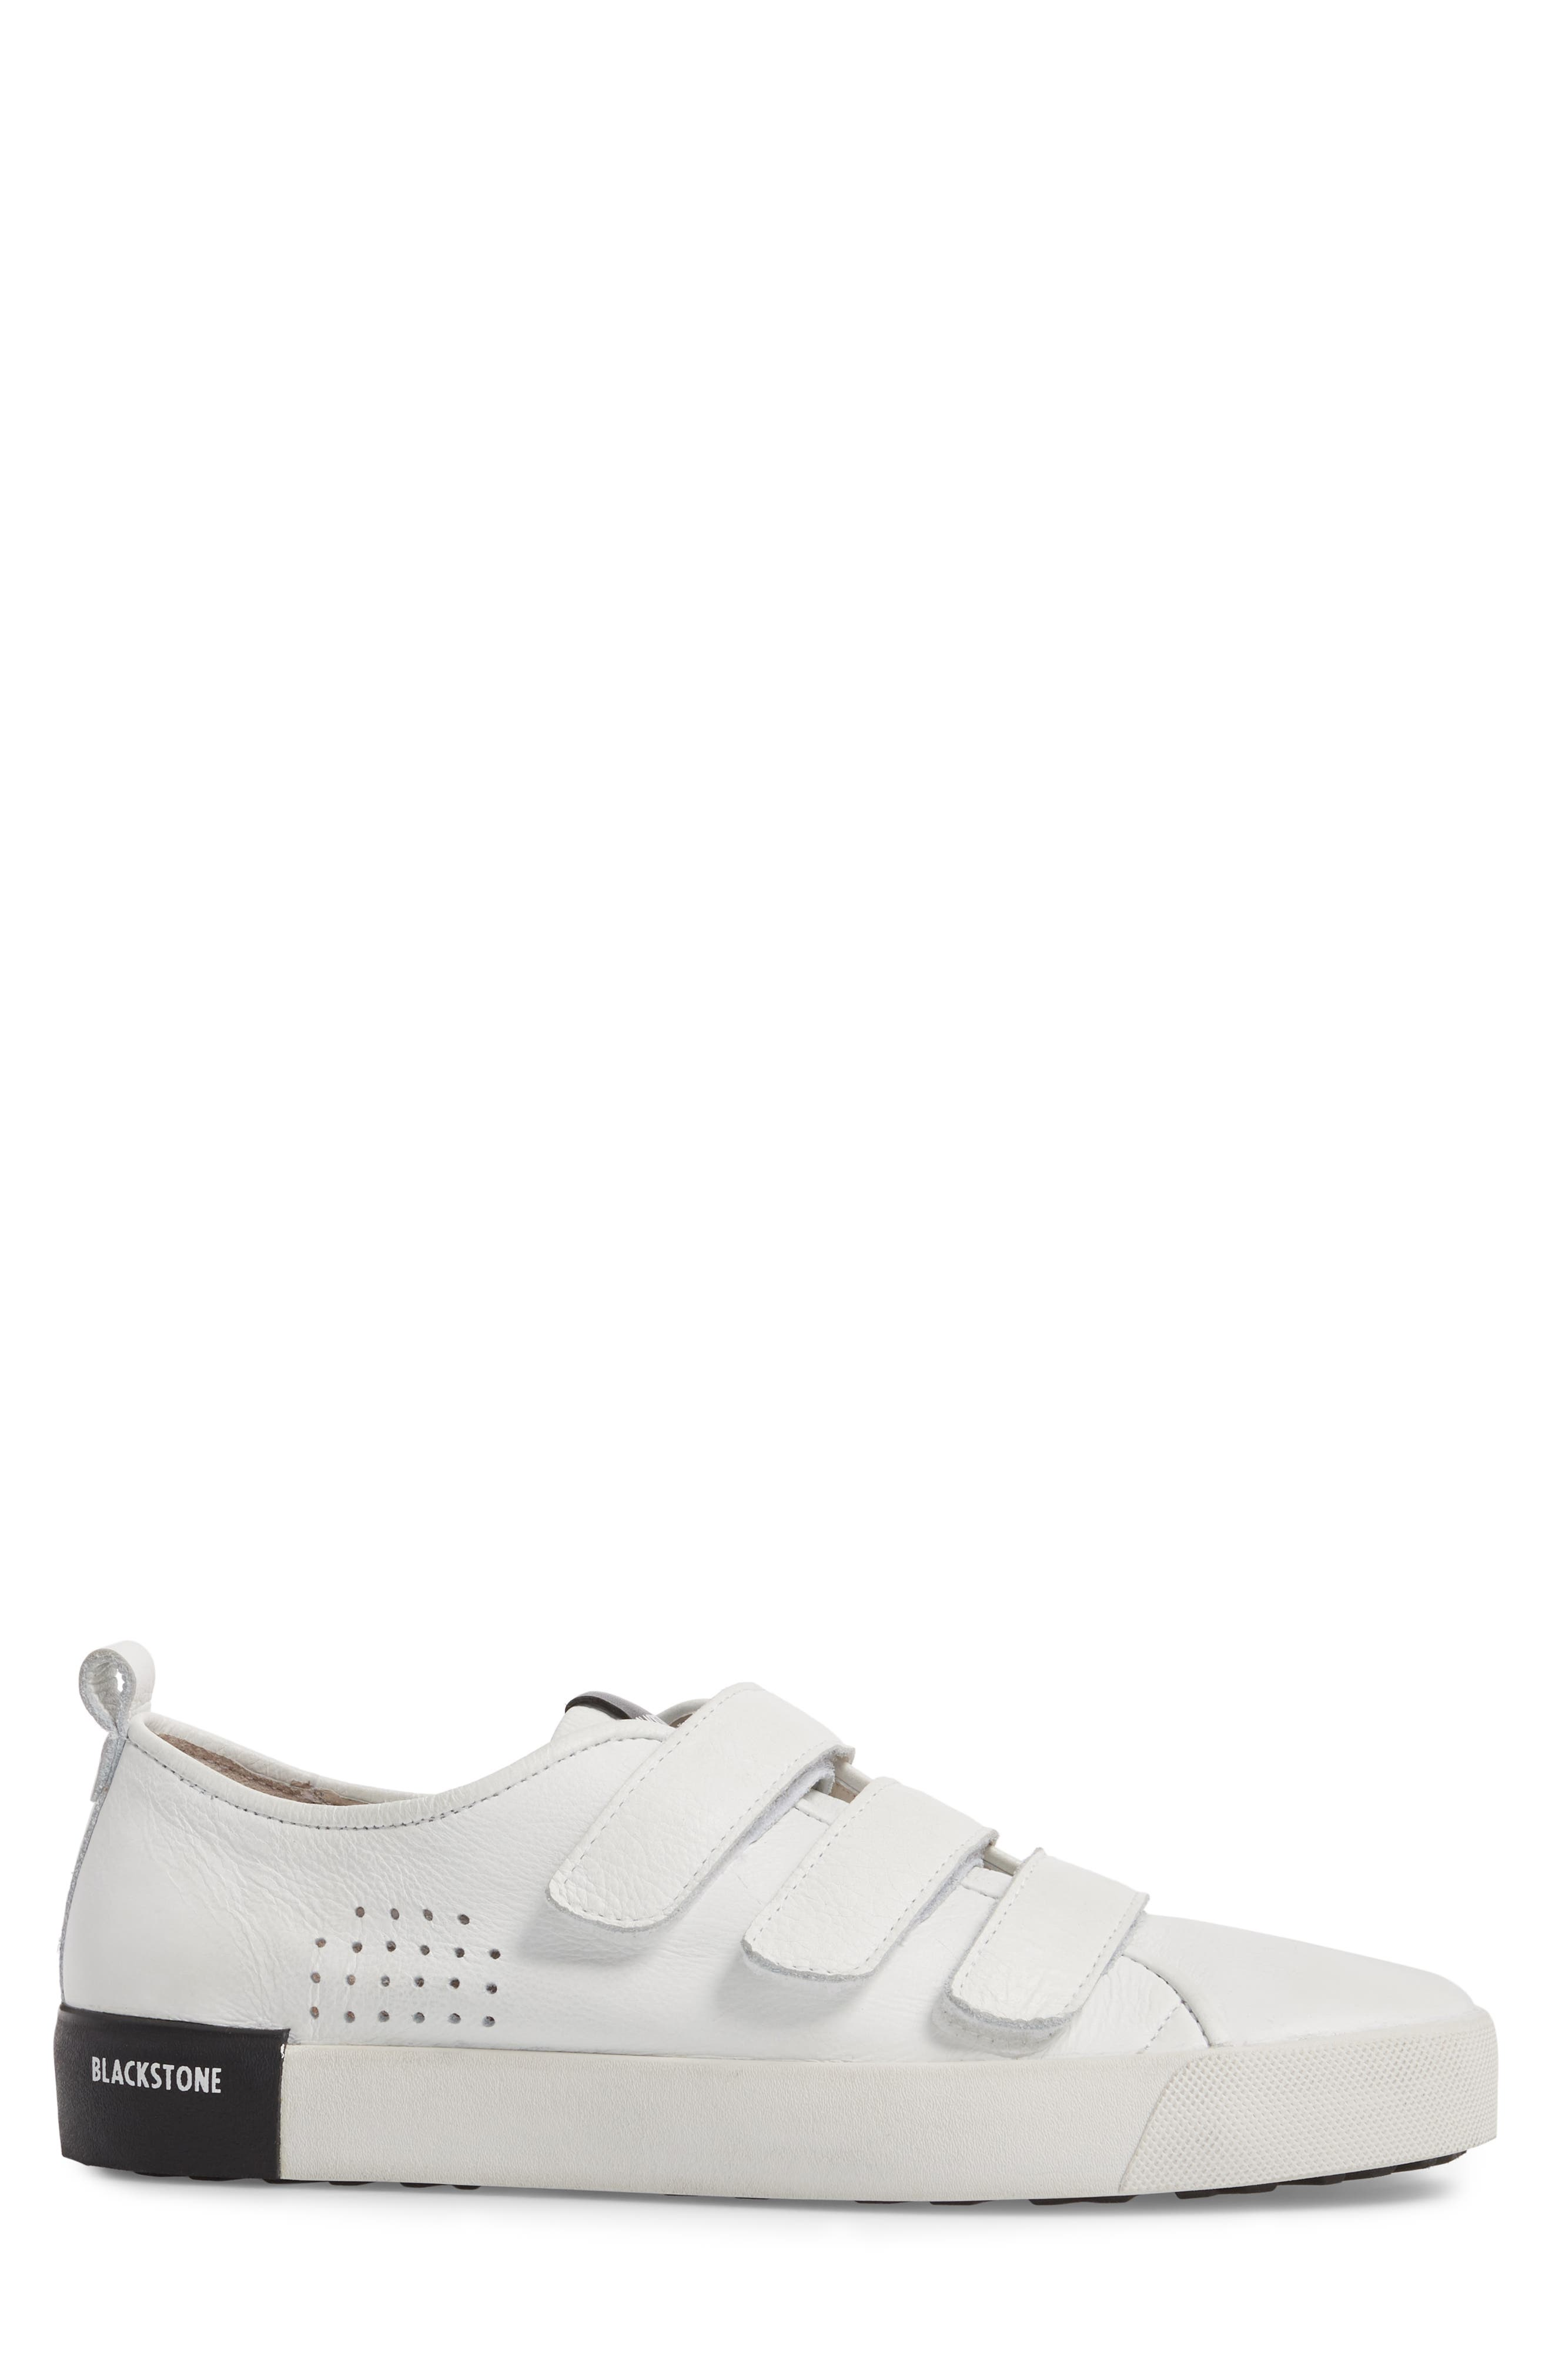 PM41 Low Top Sneaker,                             Alternate thumbnail 3, color,                             WHITE LEATHER